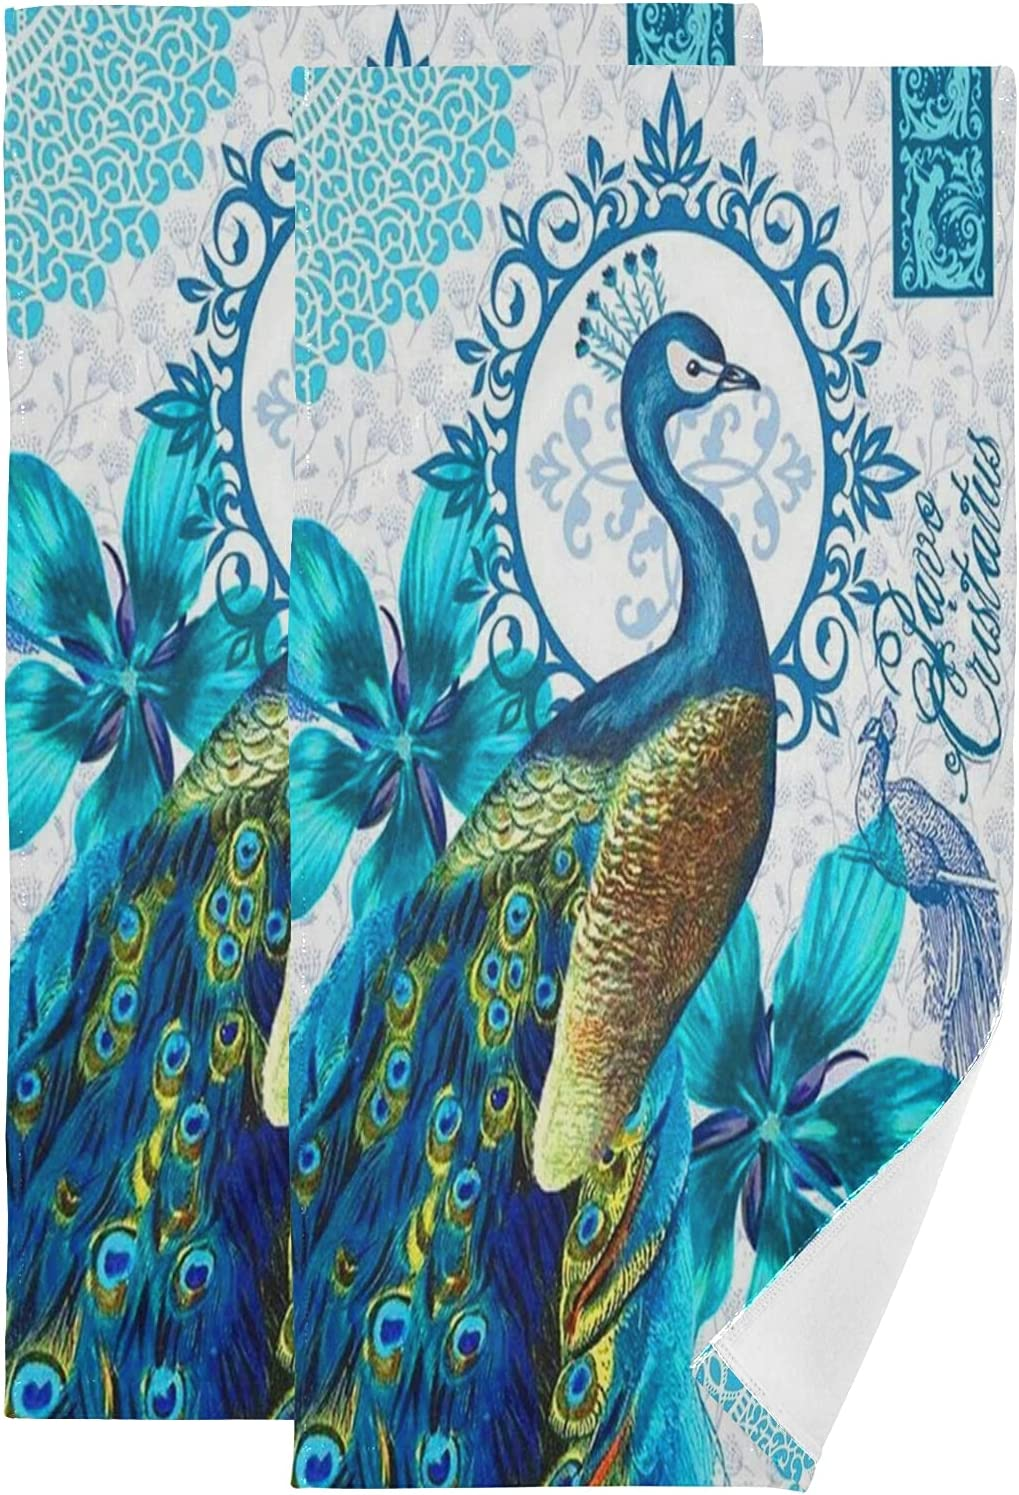 ALAZA Peacock Hand Ranking TOP16 store Towels Soft Absorbent Decorative Bath